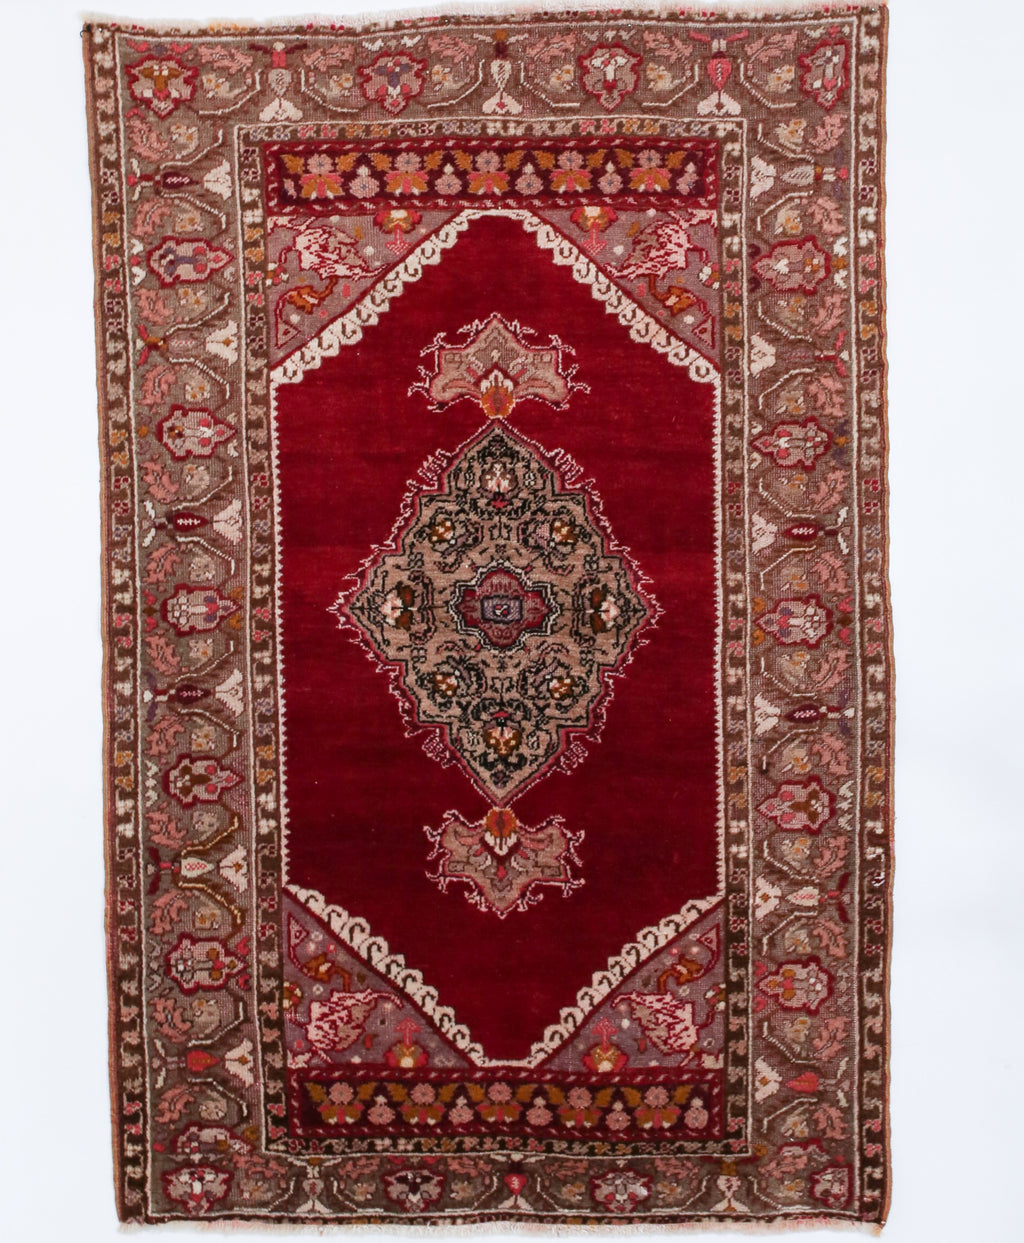 "Semi-Antique Turkish Kirsehir Rug 3'6"" x 5'4"""